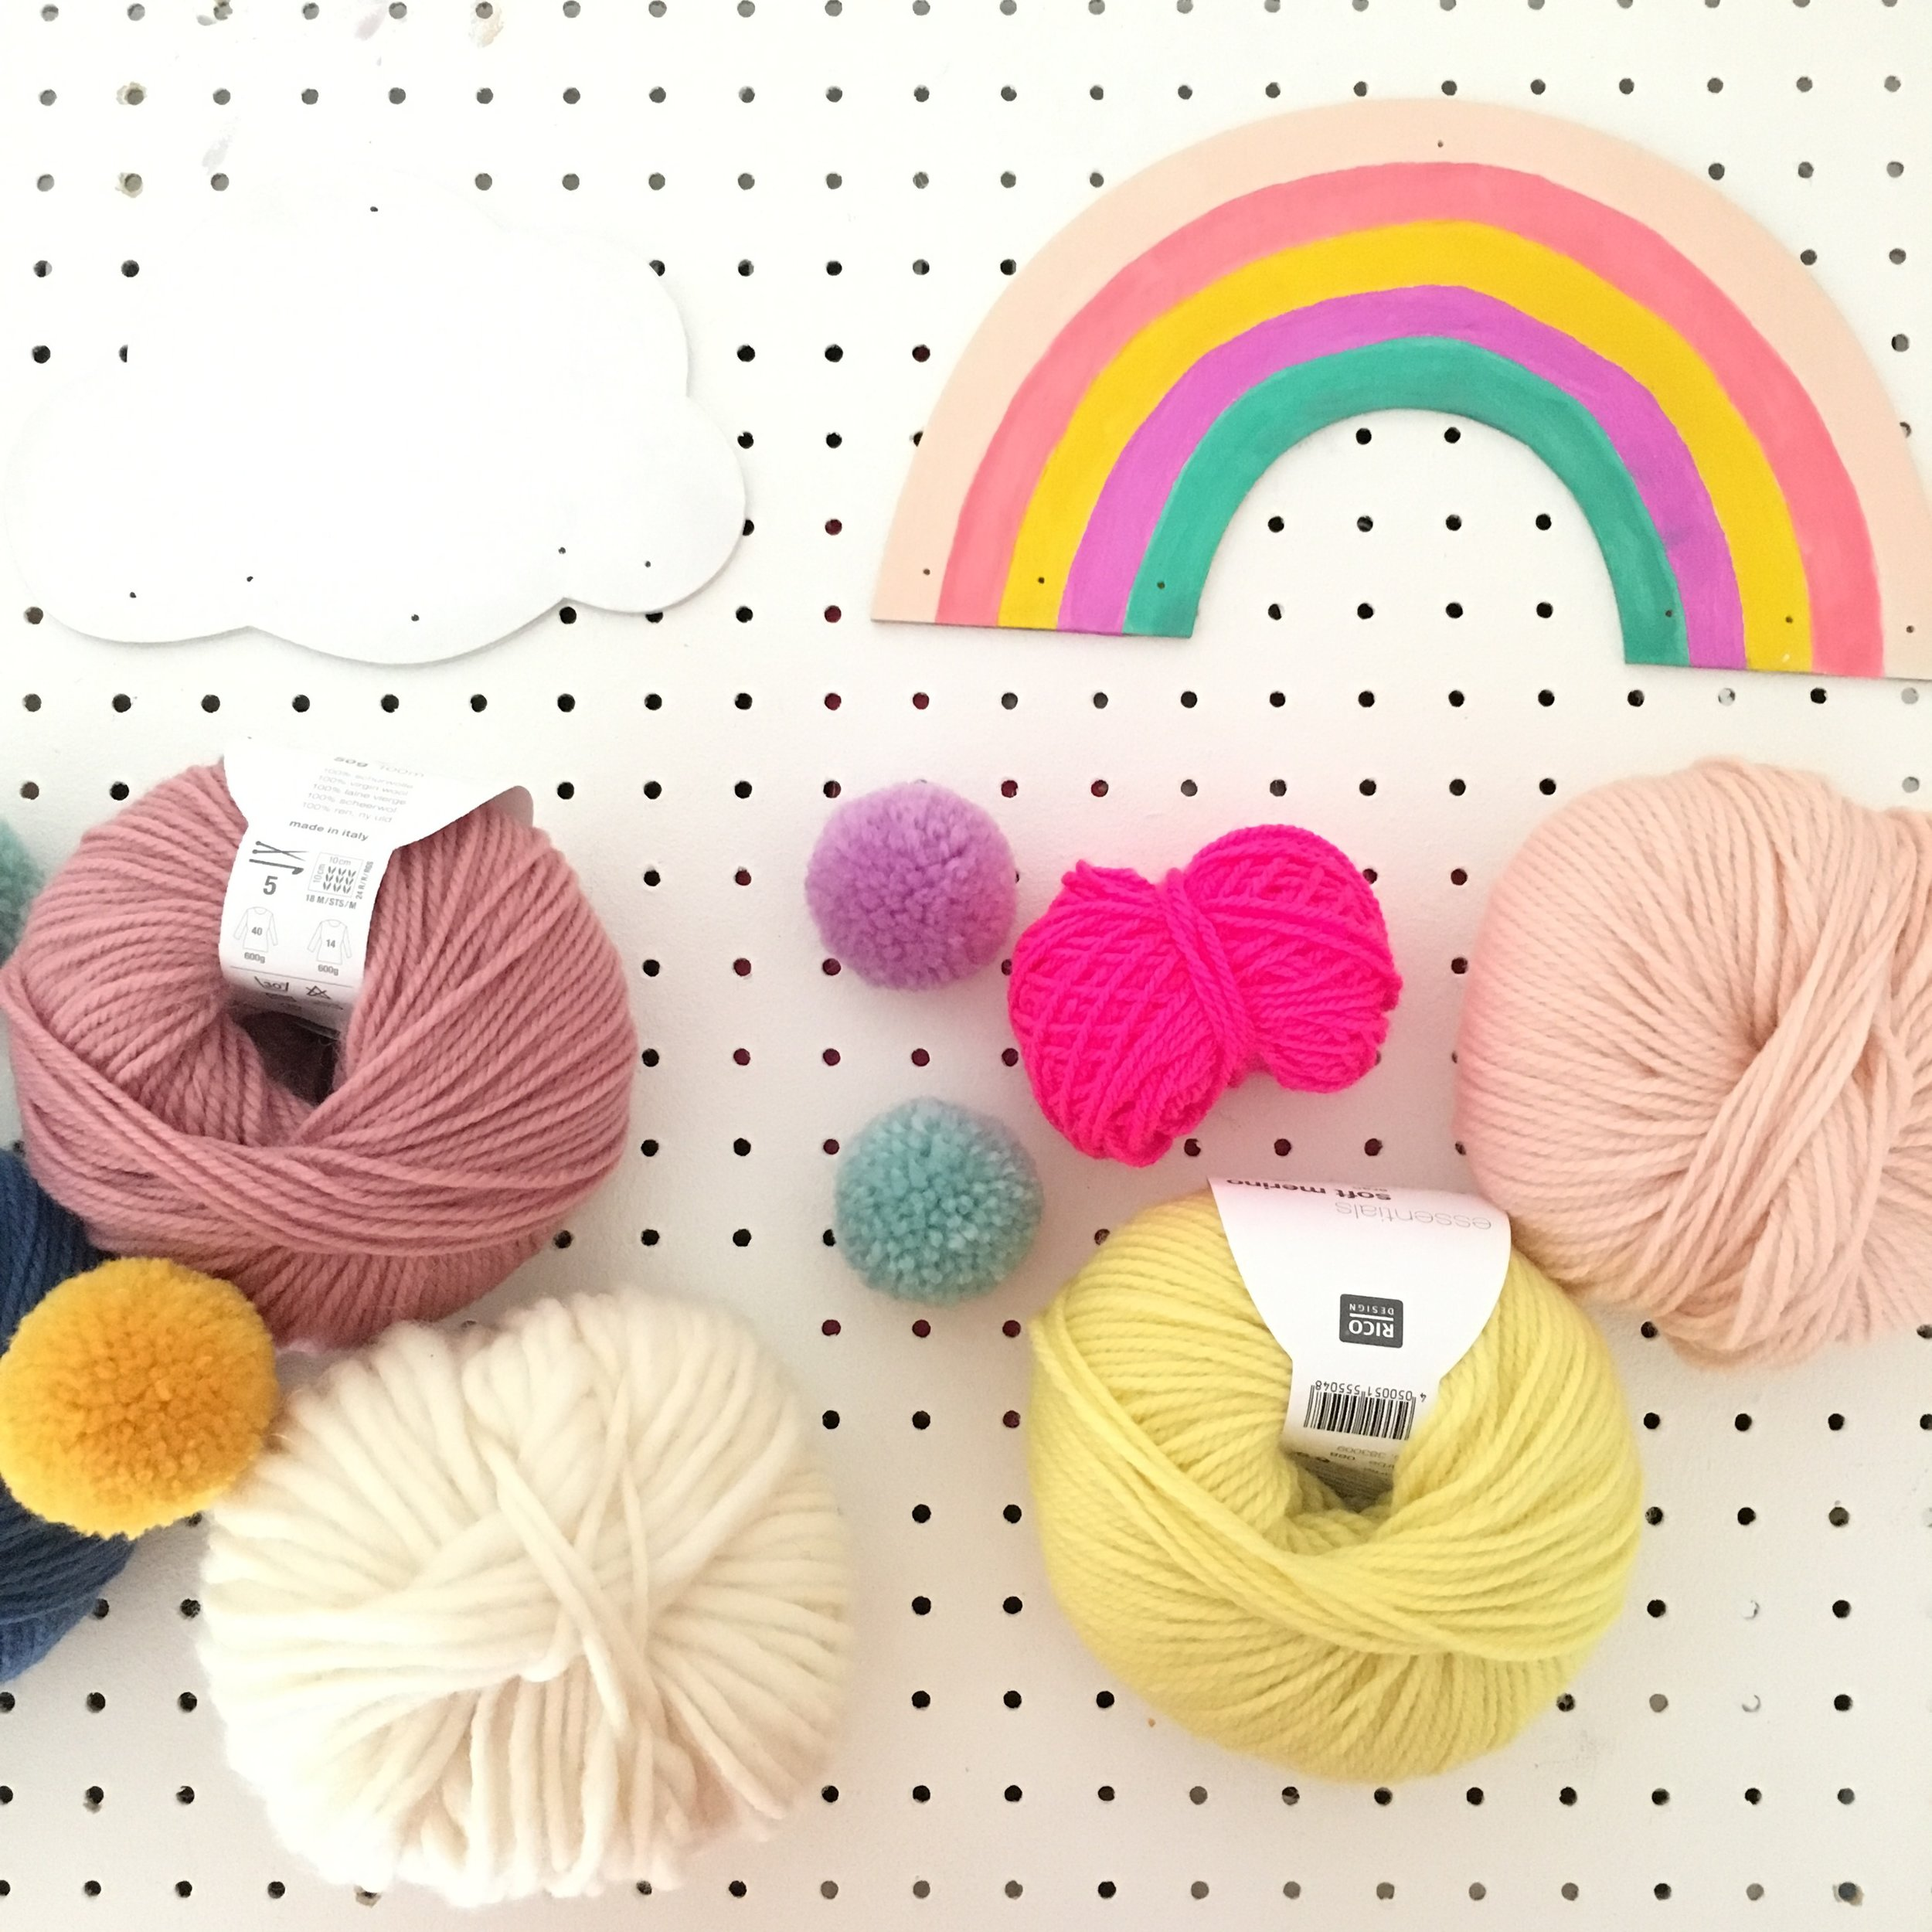 rico design yarn making pom-poms